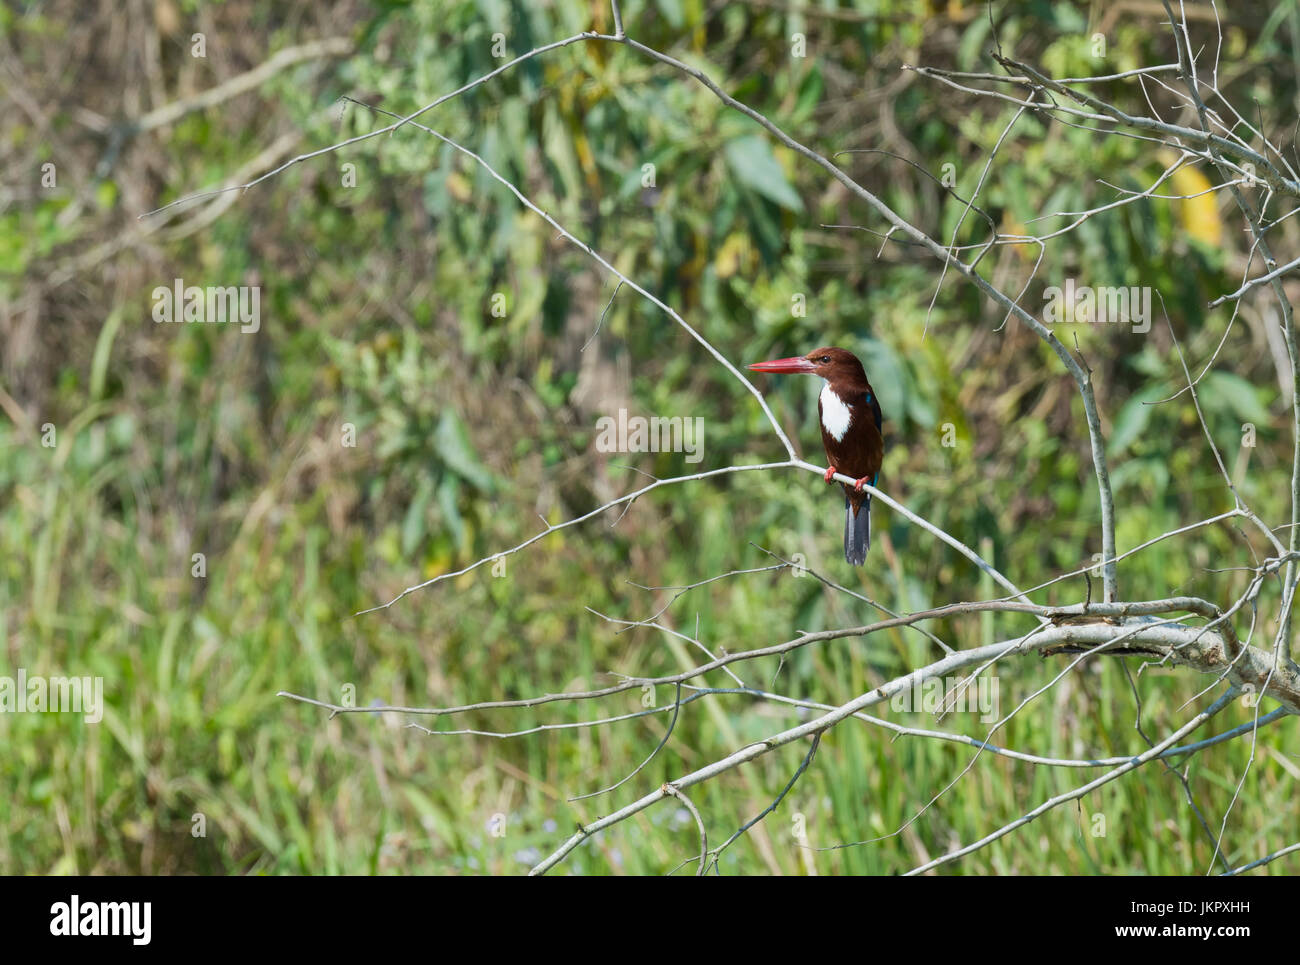 White-Throated Kingfisher (Halcyon smyrnensis smyrnensis) on a branch, Chitwan National Park, Nepal - Stock Image